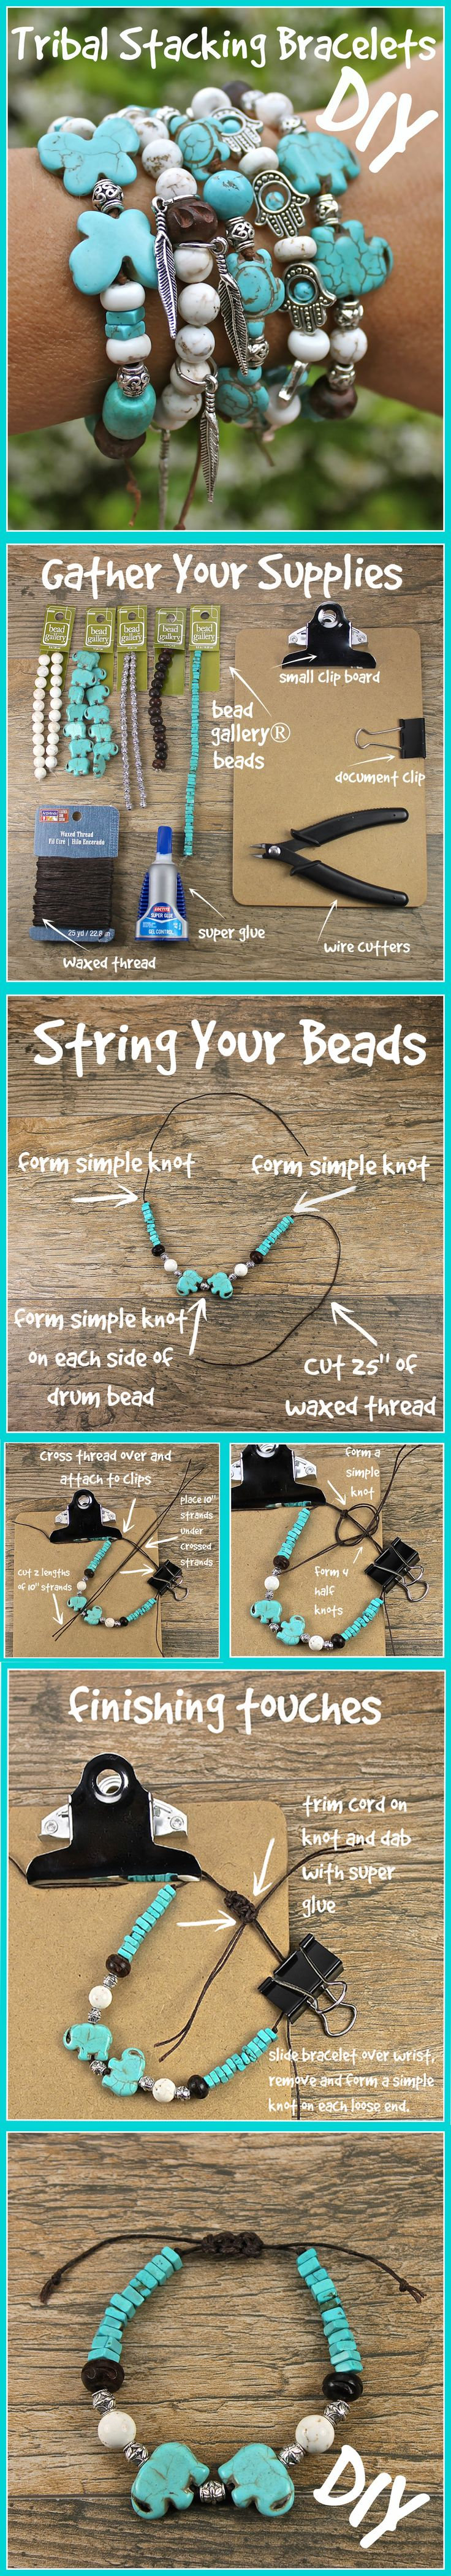 Make these Tribal Stacking Bracelets to adorn your wrist. Just a few easy steps.